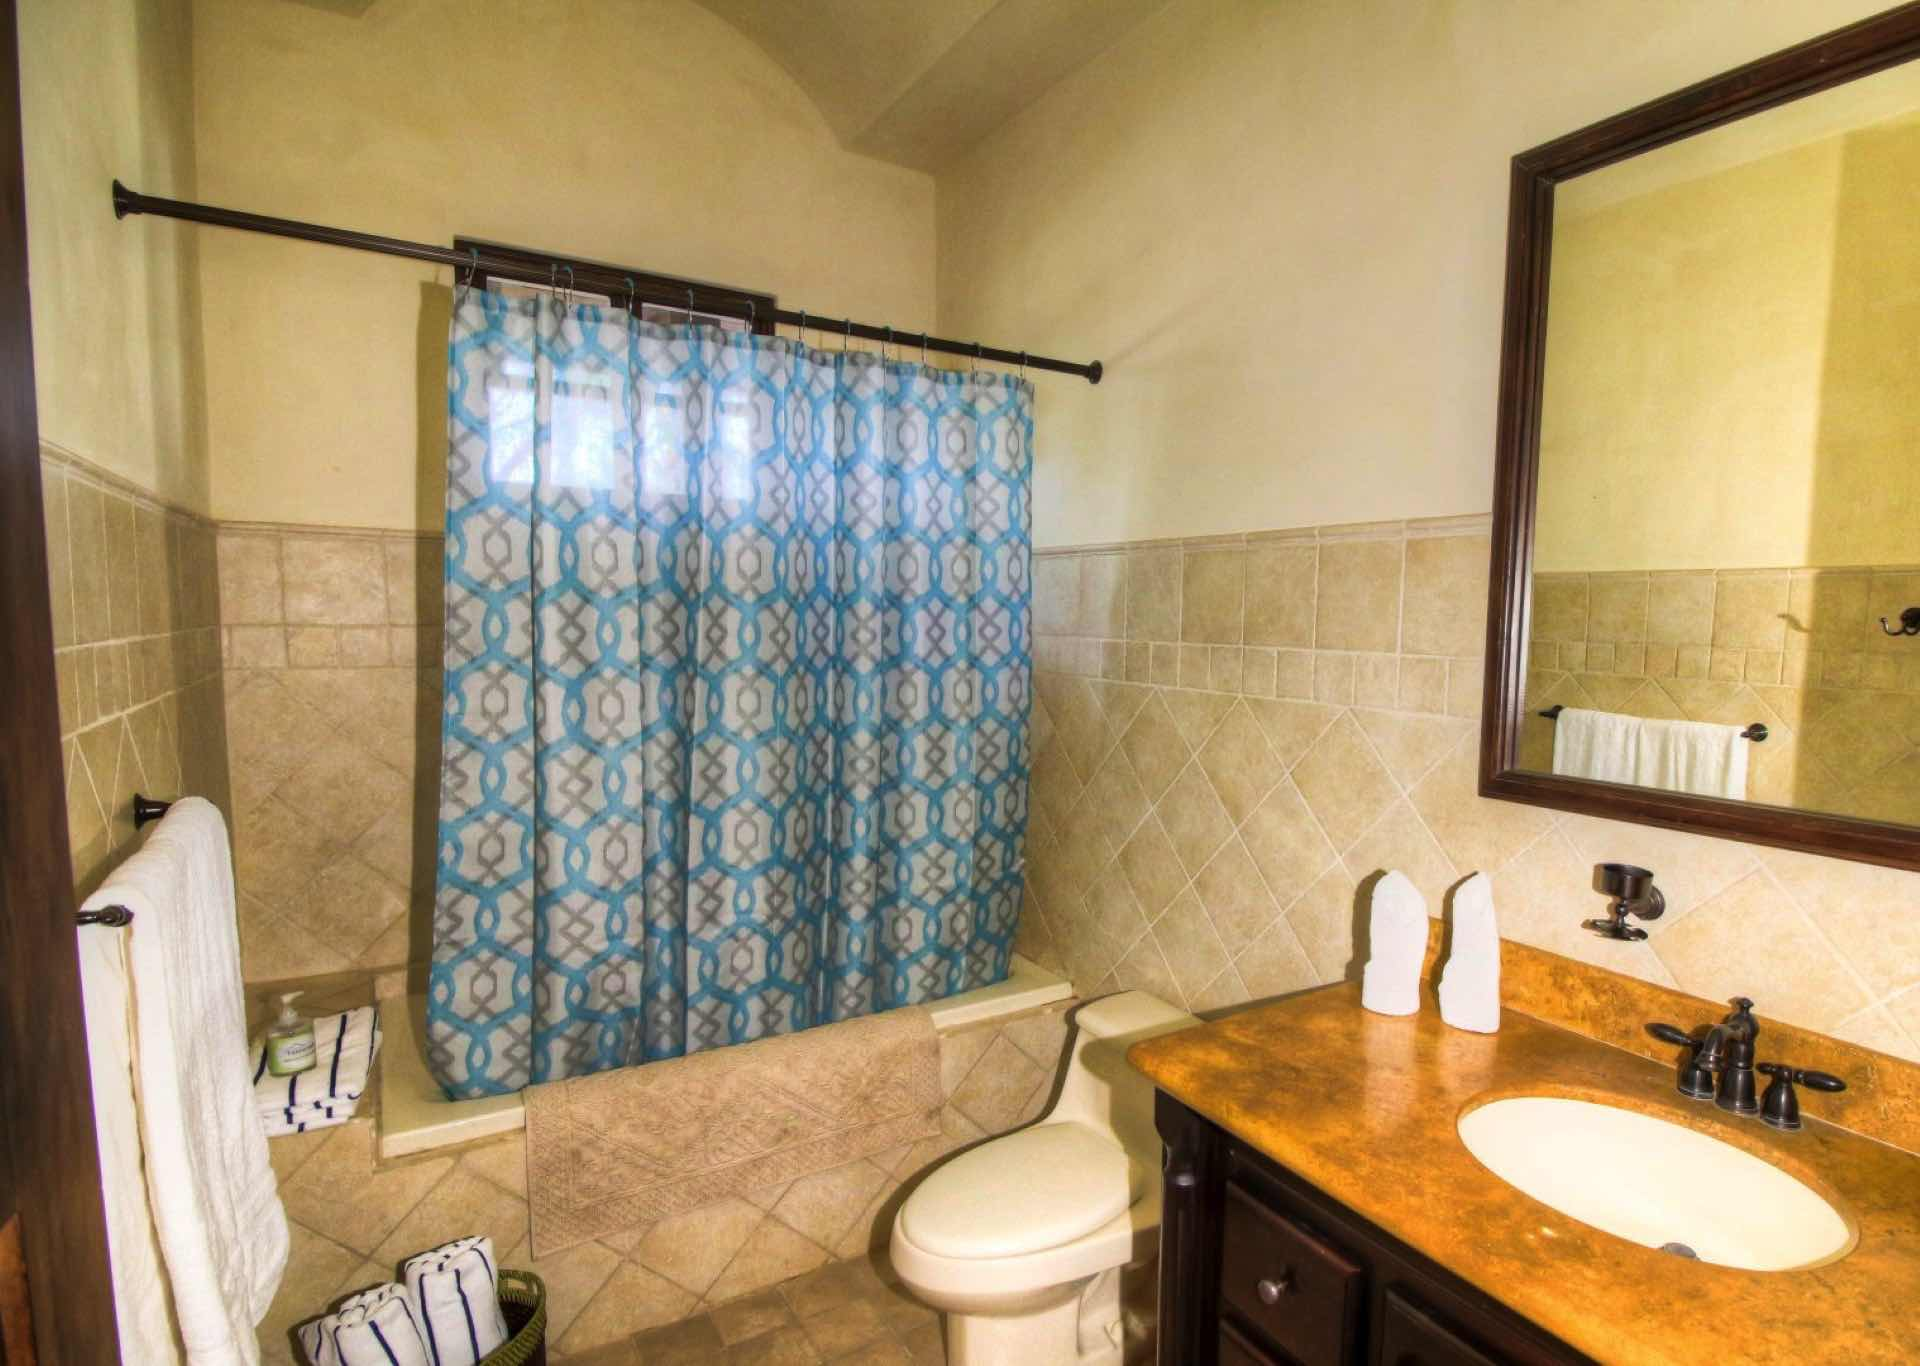 Bathroom with combination shower/tub